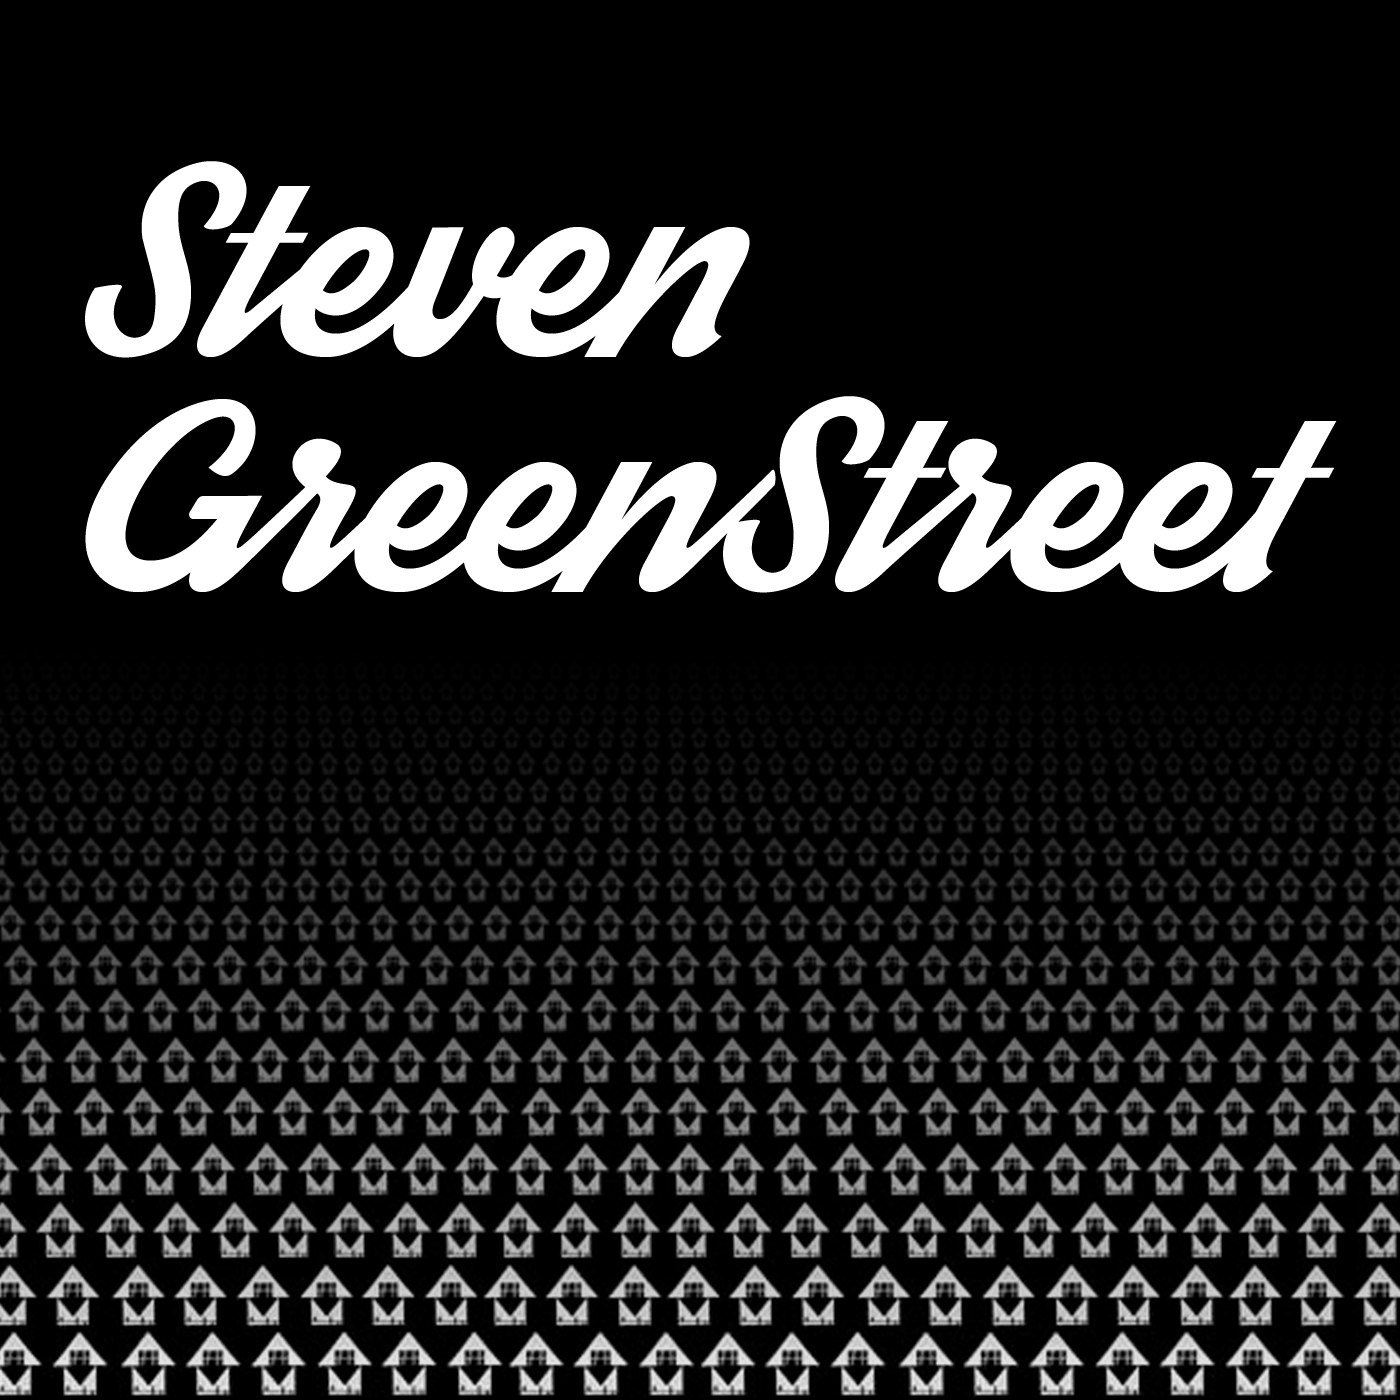 Steven Greenstreet Net Worth